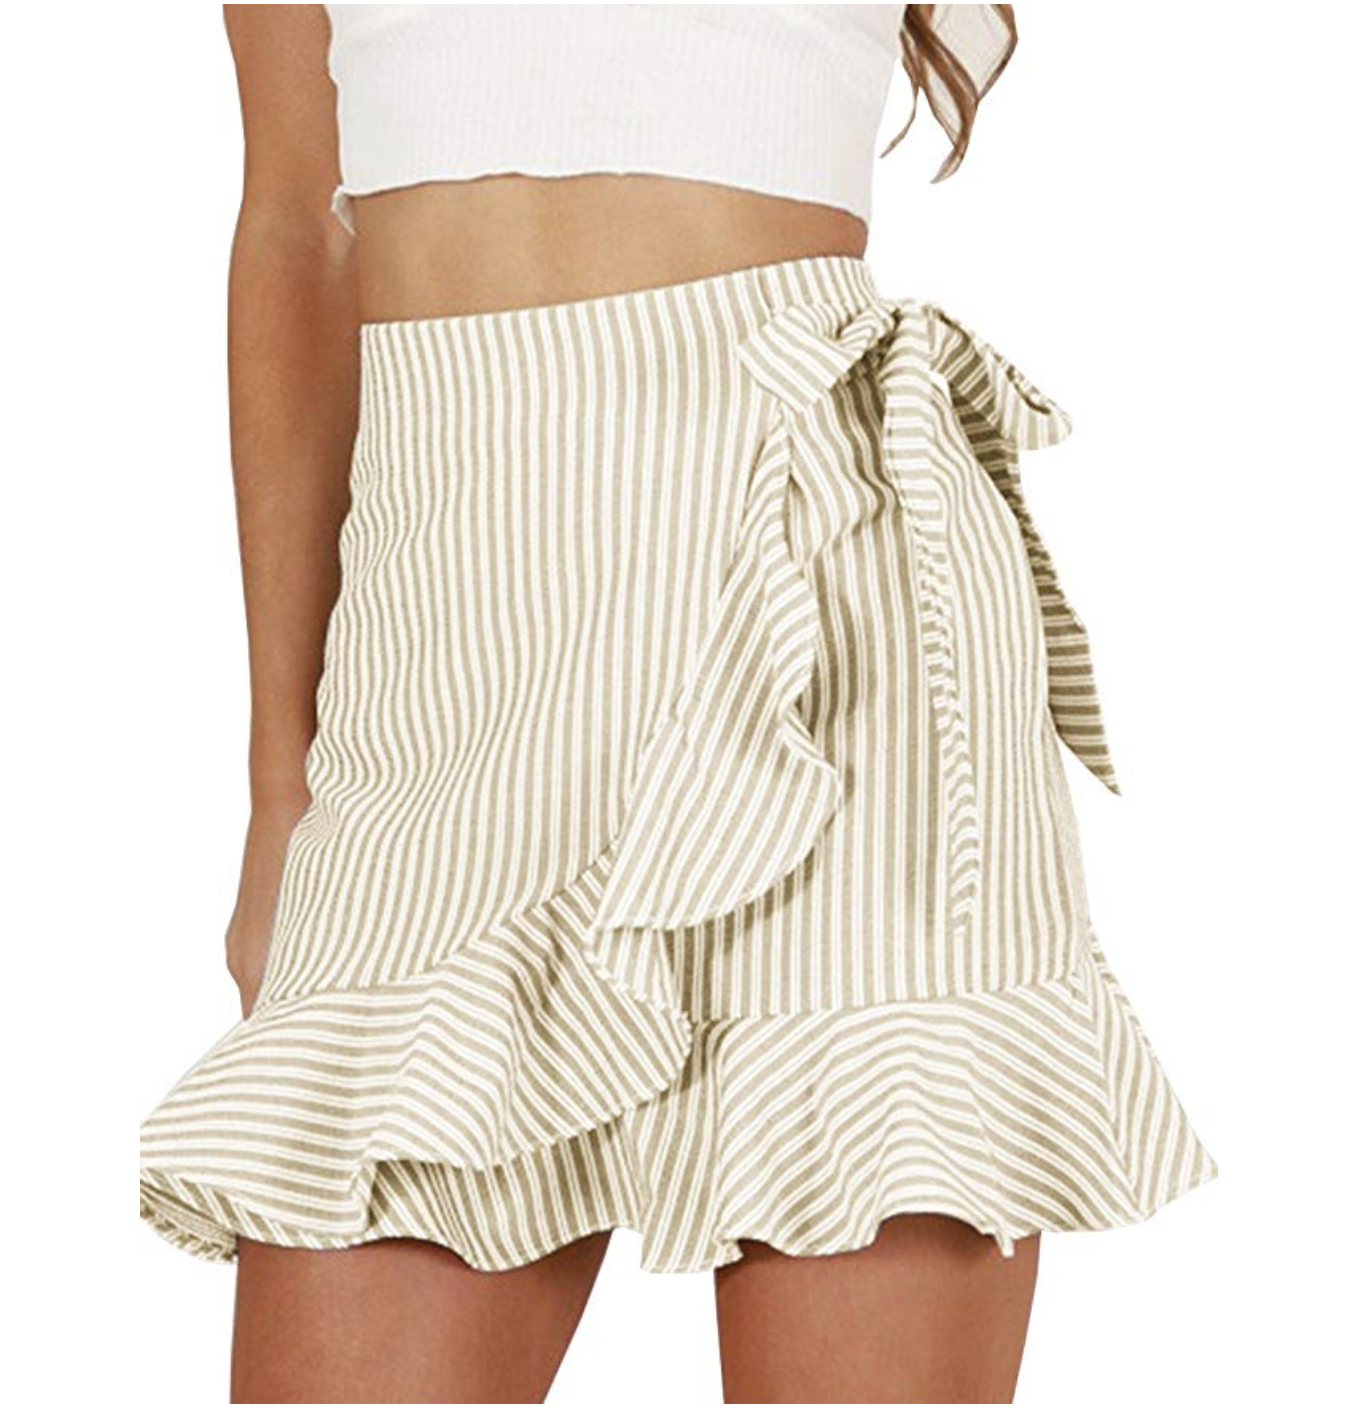 Amazon shopping ideas | Amazon sale | Amazon spring fashion | spring clothing | stripe skirt